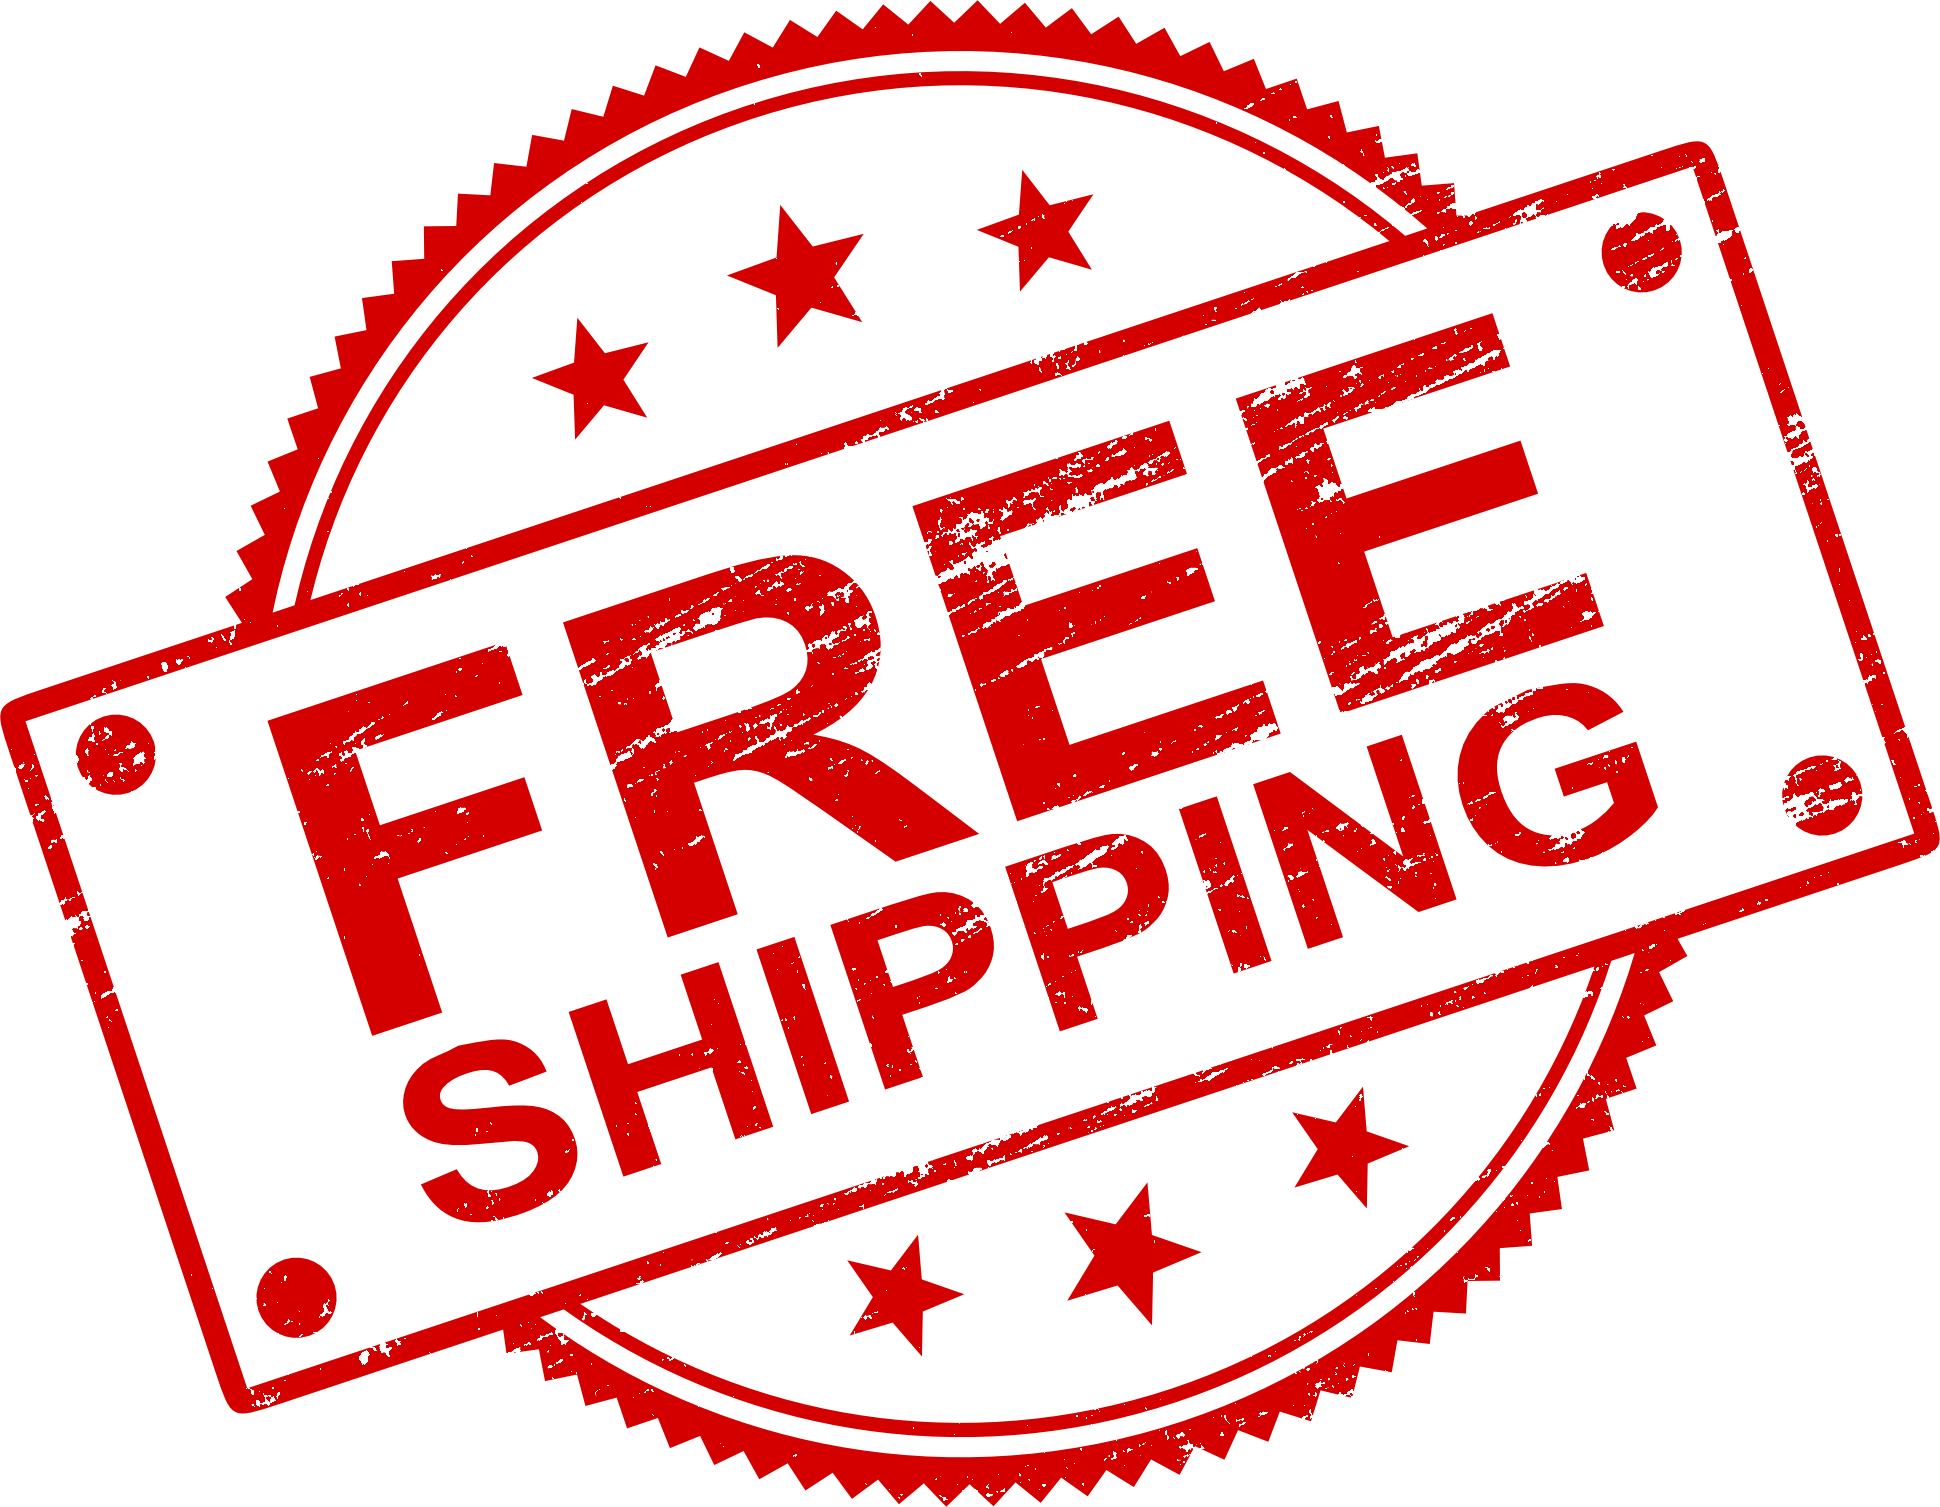 shippingfree